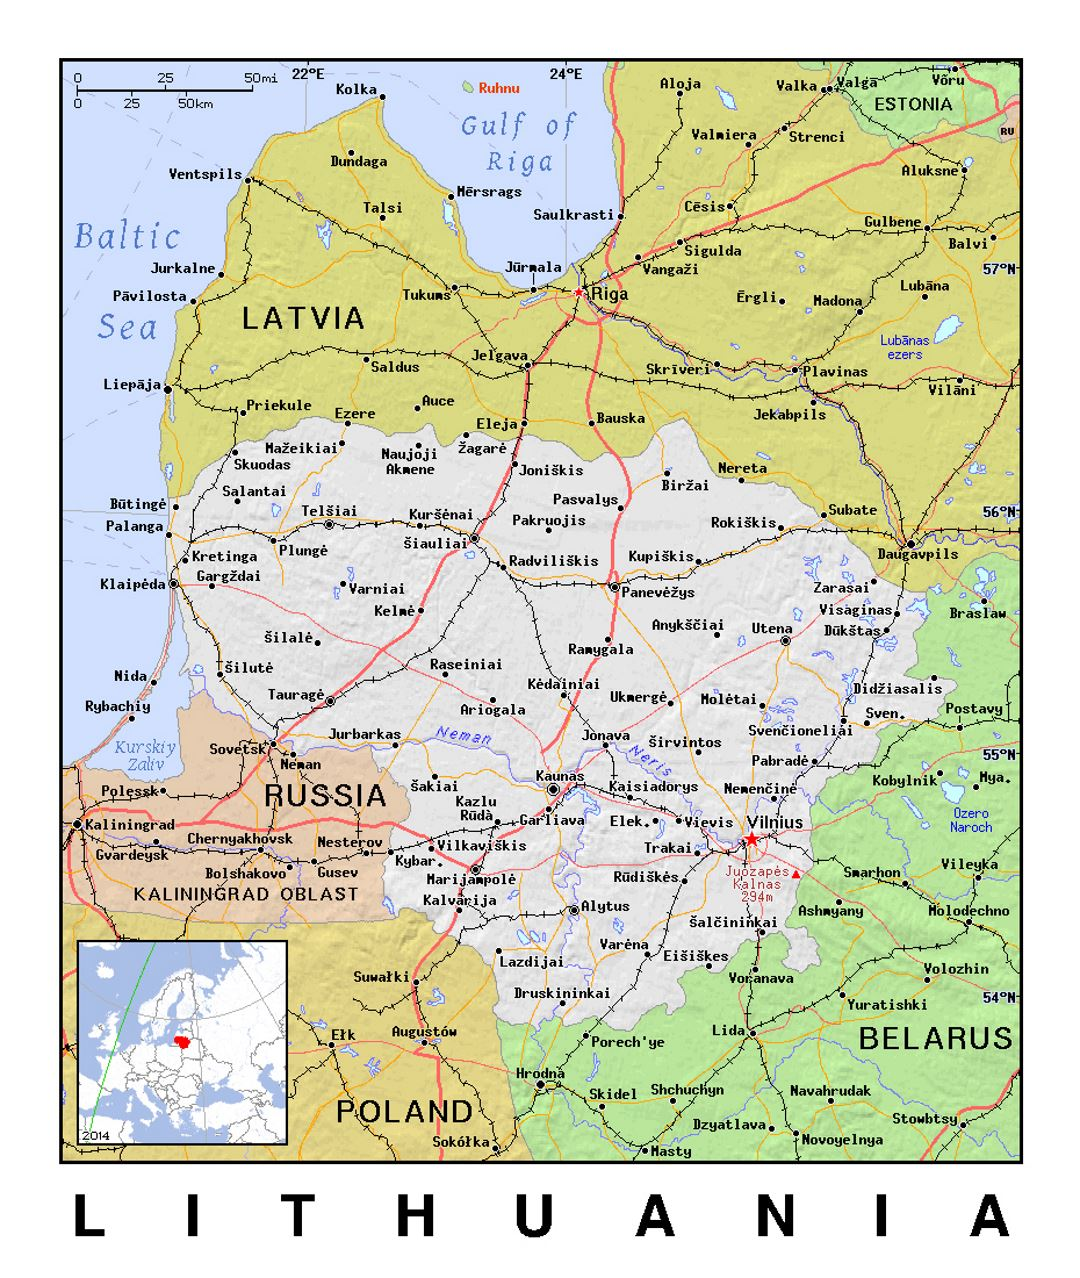 Detailed political map of Lithuania with relief